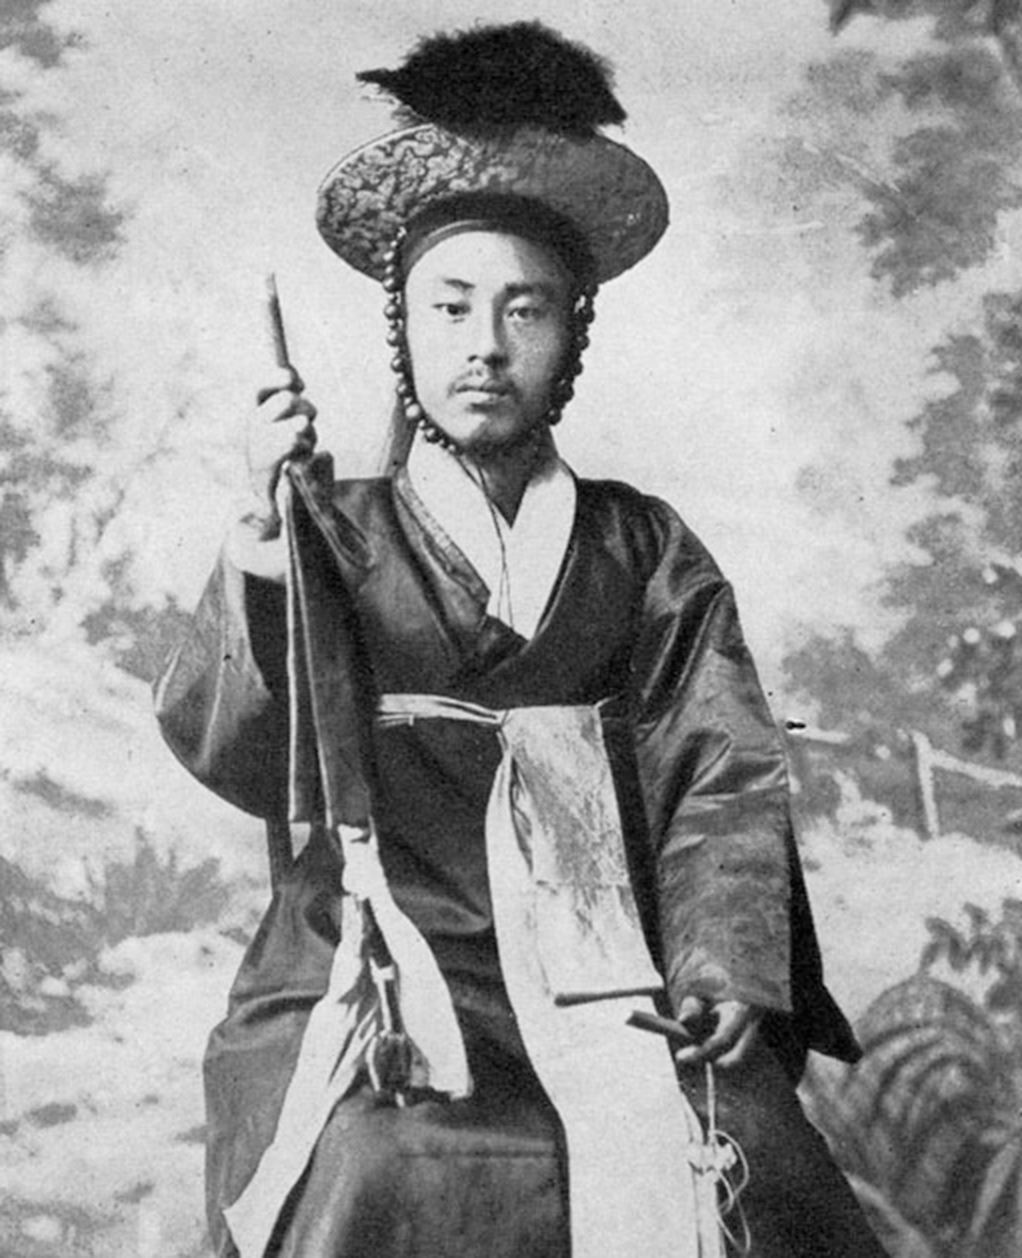 Monochromatic photograph of Korean officer of the Old Army, e-Asia Digital Library